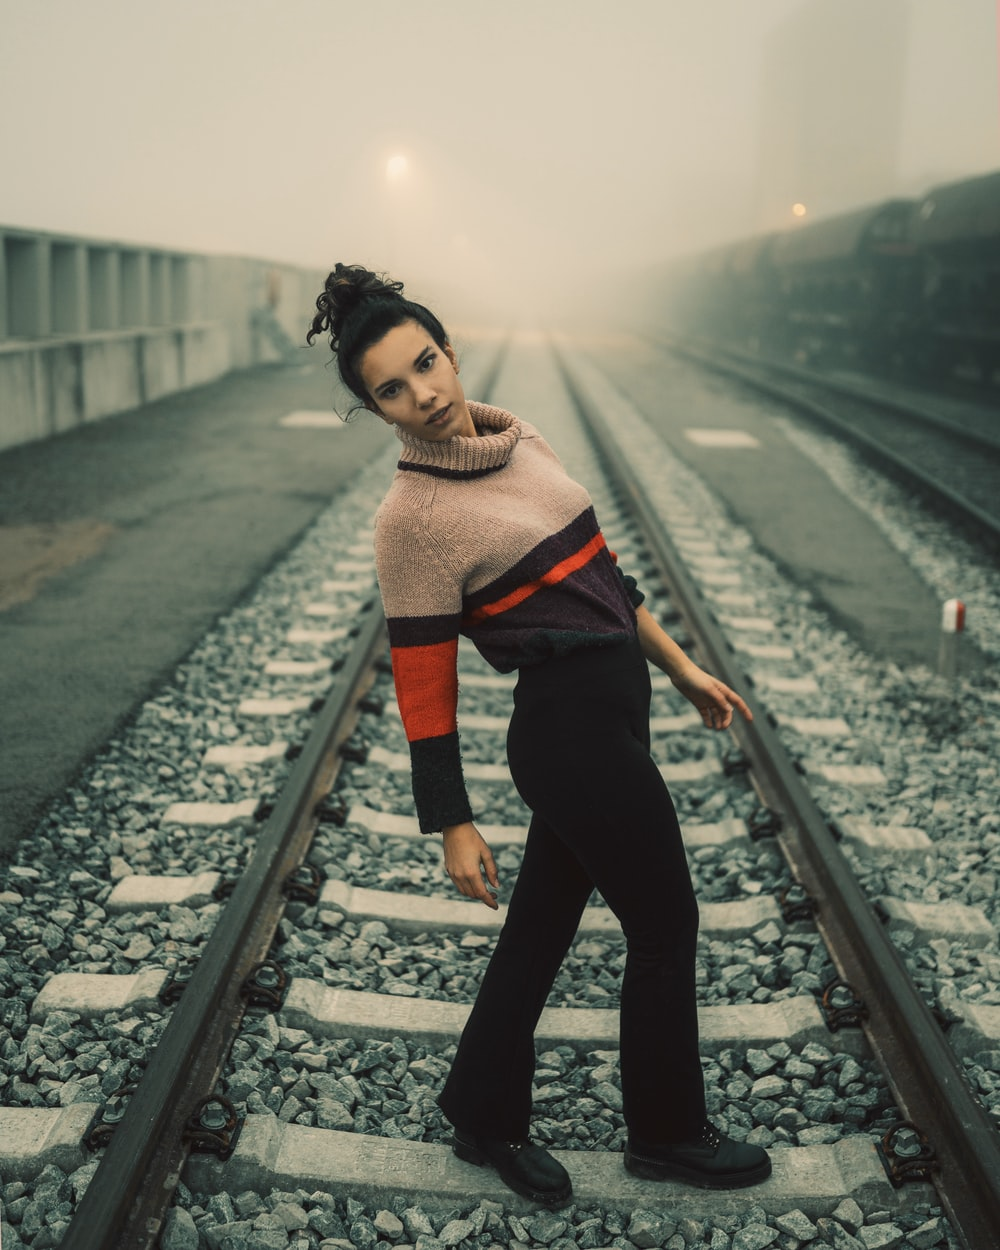 woman in black pants standing on train rail during daytime